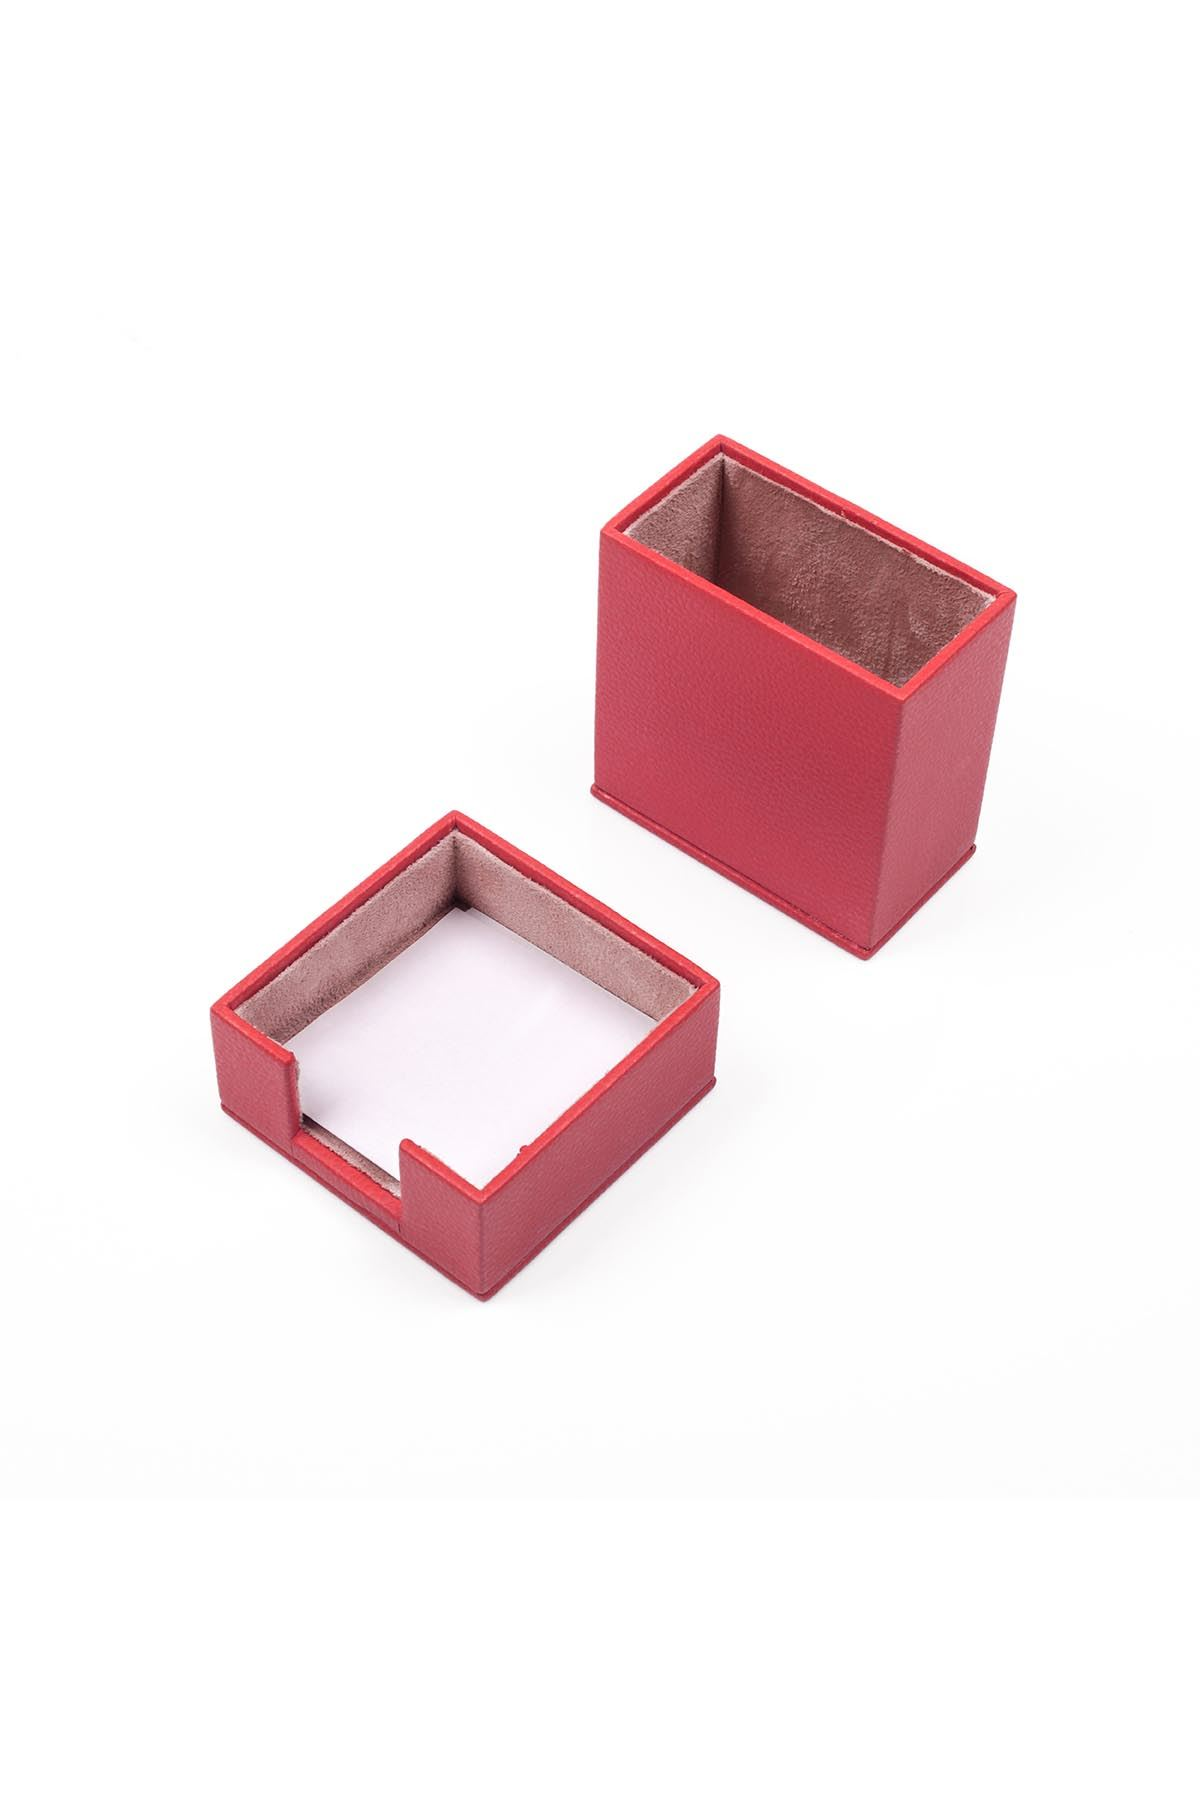 Leather Desk Accessories set of 2 Red| Desk Set Accessories | Desktop Accessories | Desk Accessories | Desk Organizers | Pencil Holder | Note Paper Holder